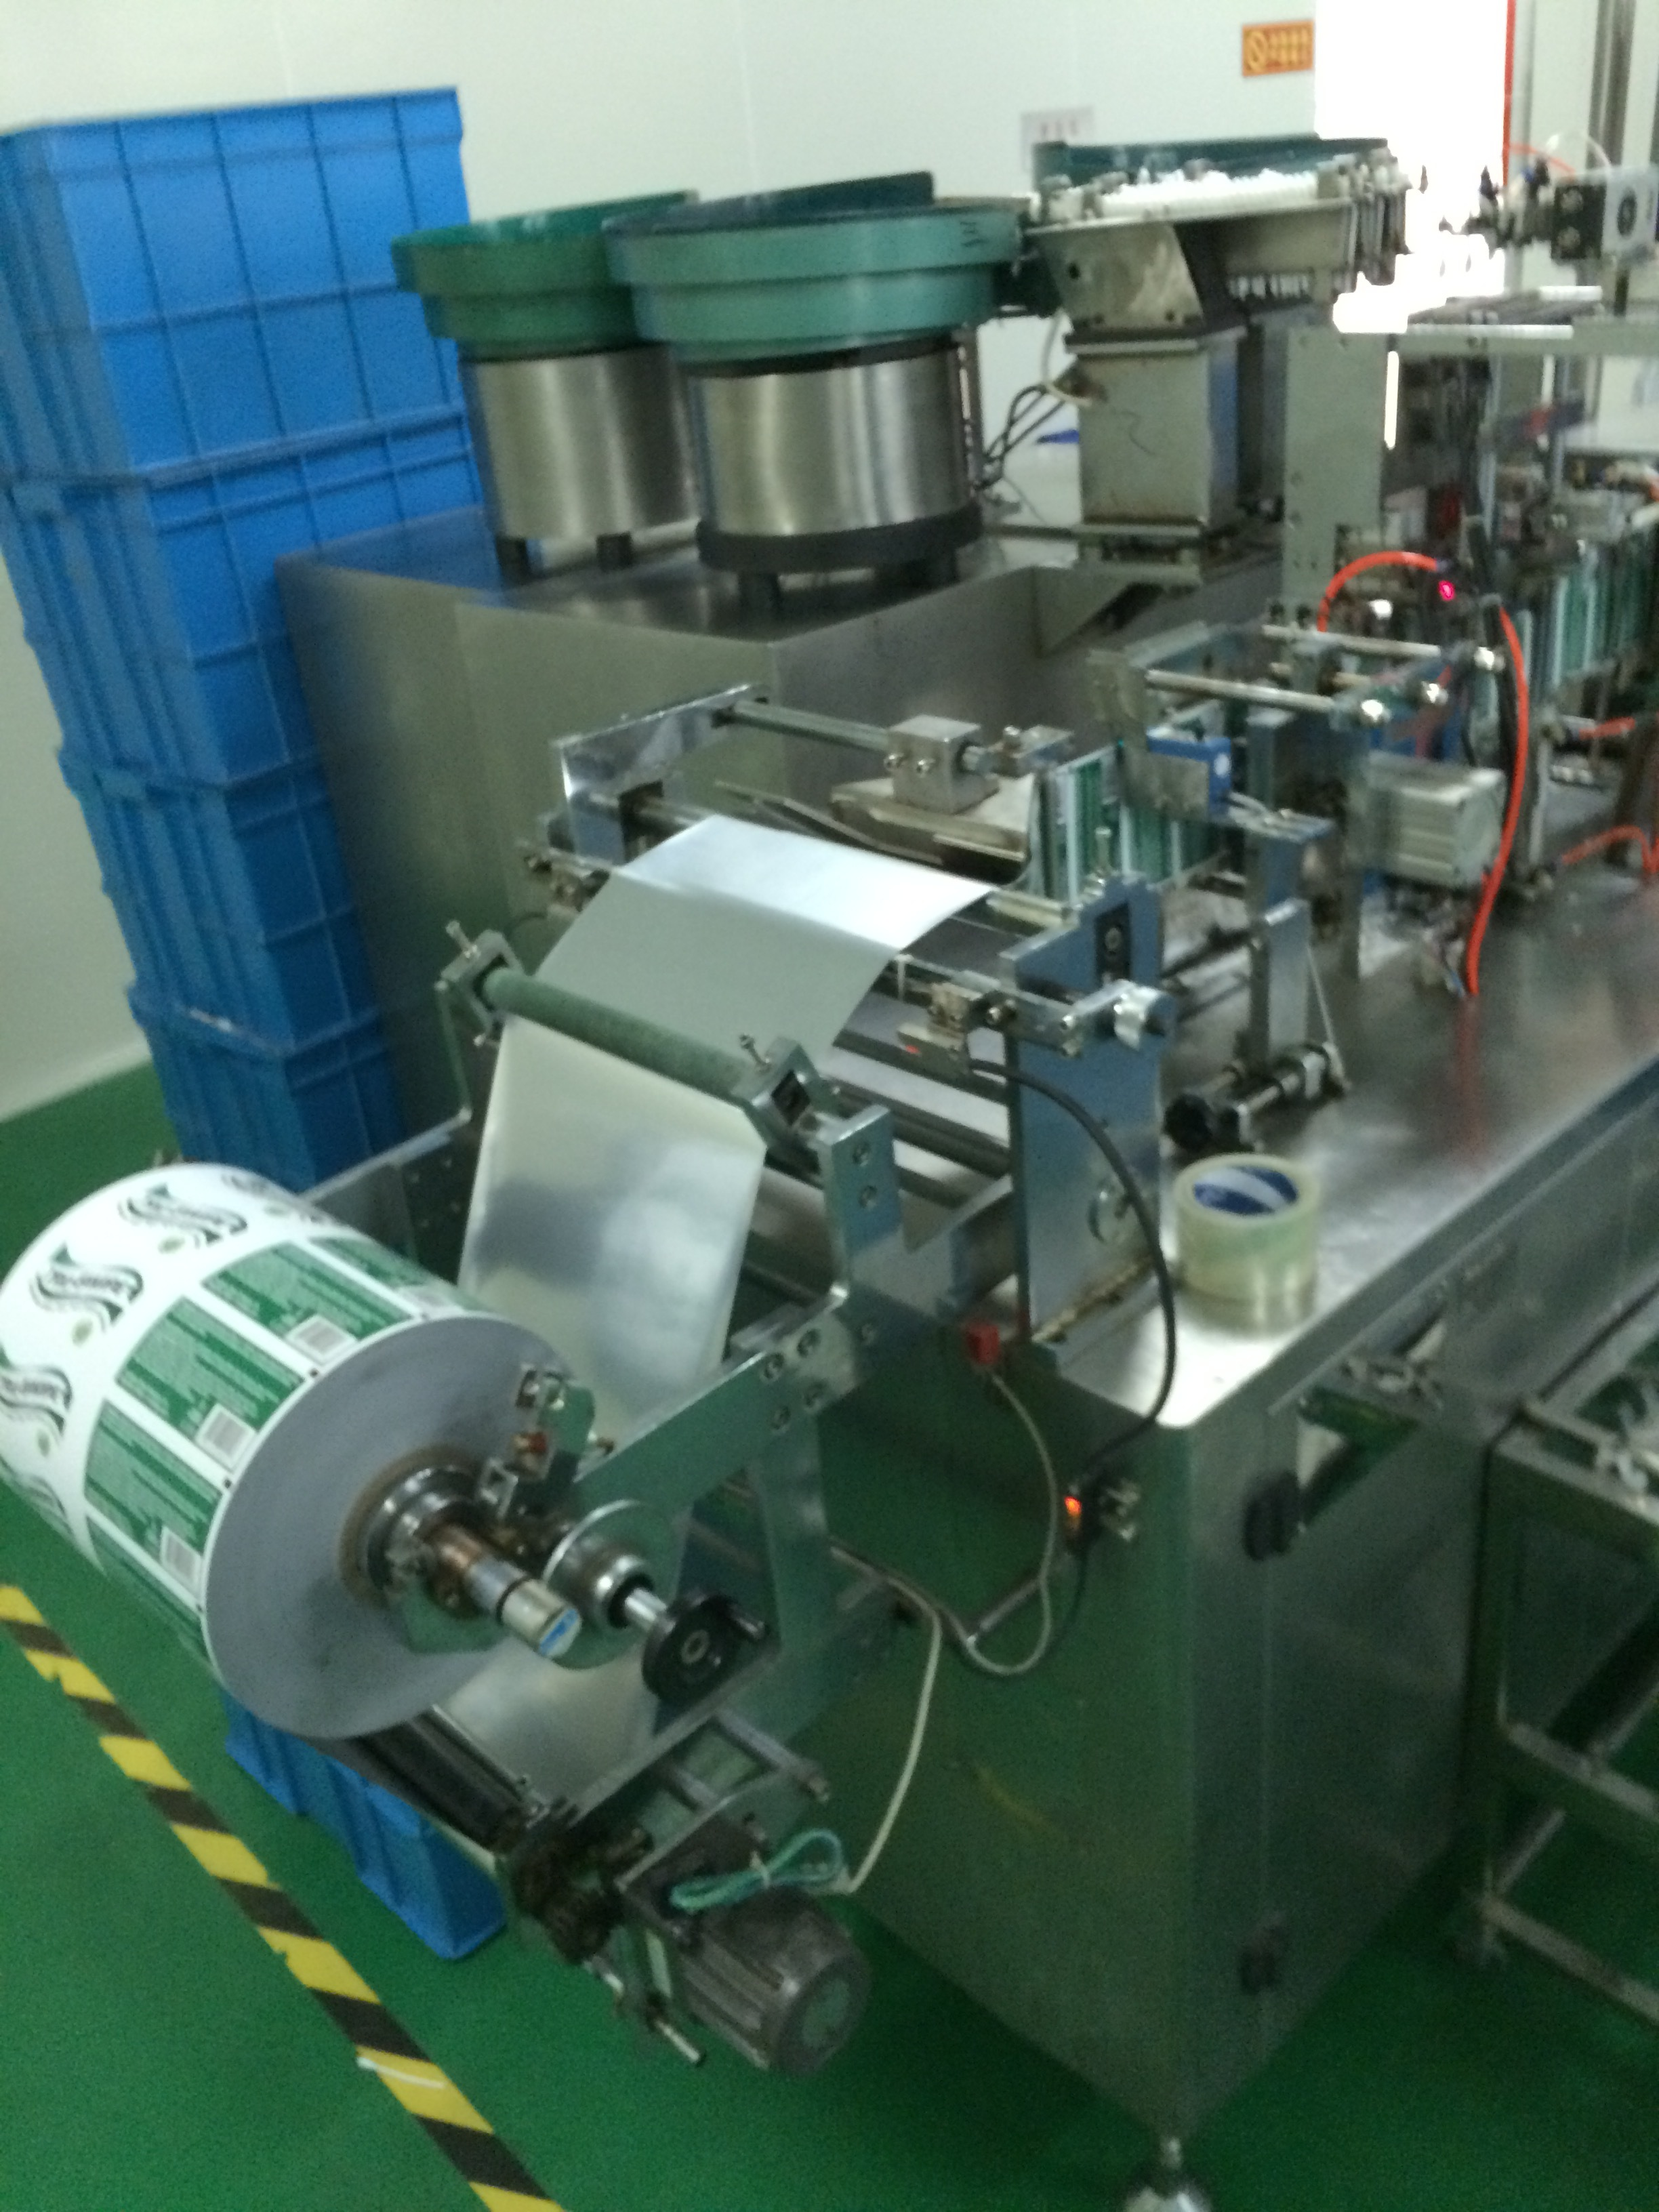 State of the art manufacturing facilities.